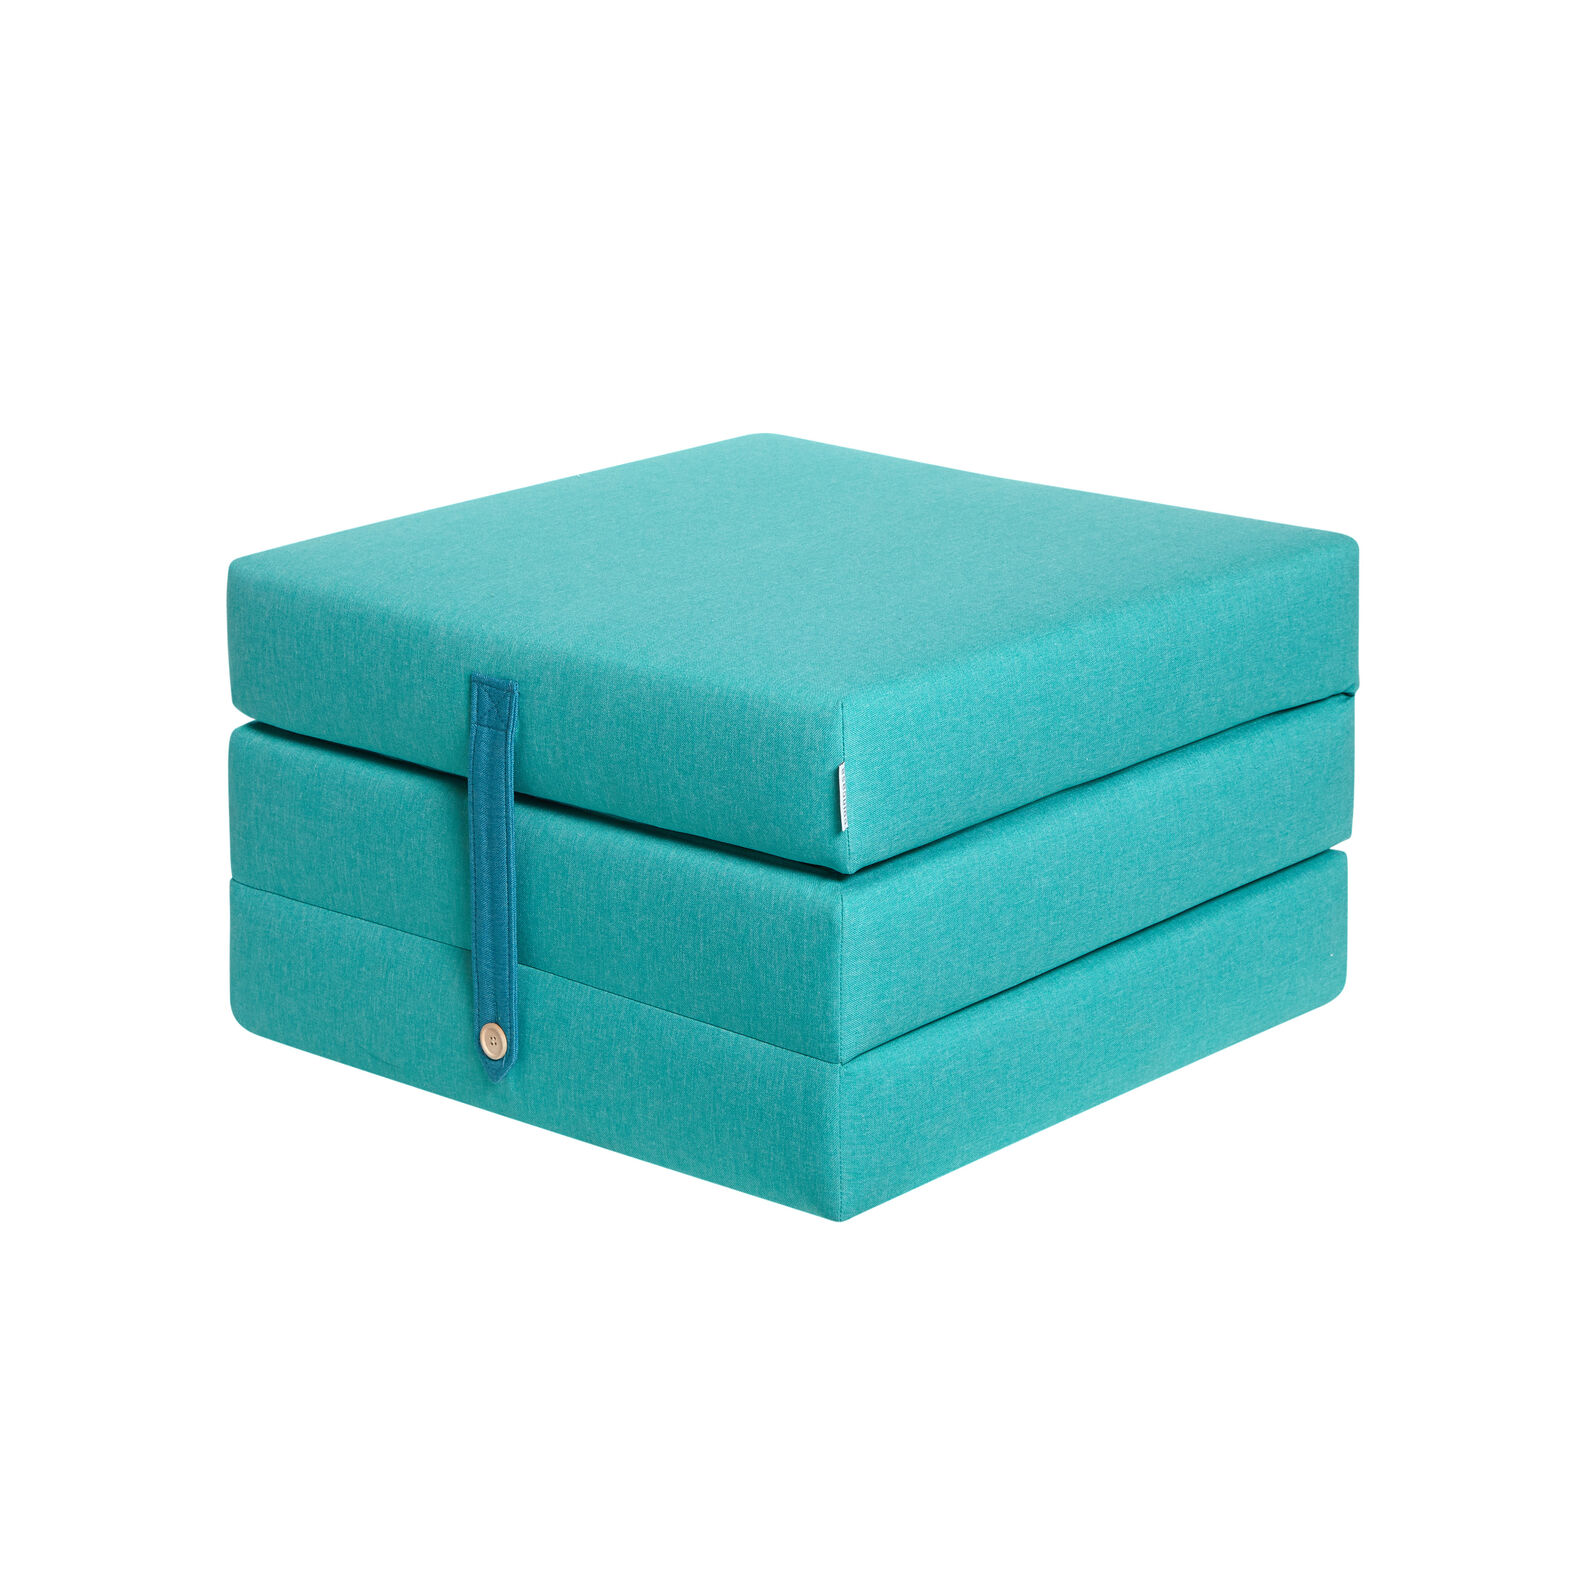 Turquioise solid colour fabric ottoman